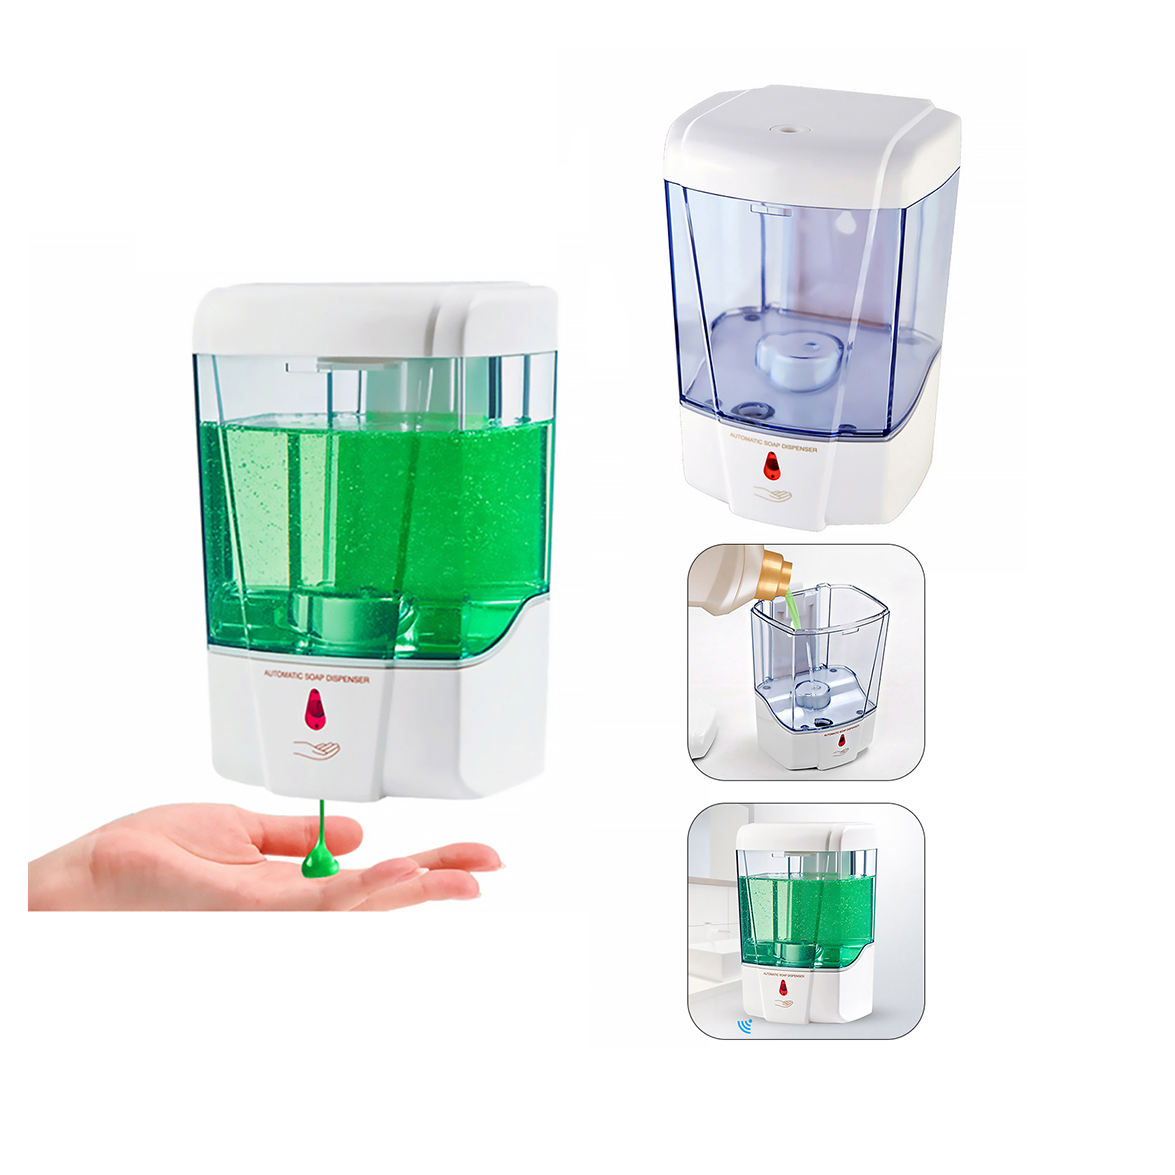 700ml Wall-Mount Automatic IR Sensor Touch Free Soap Dispenser Lotion Pump For Kitchen Bathroom Liquid Soap Dispenser